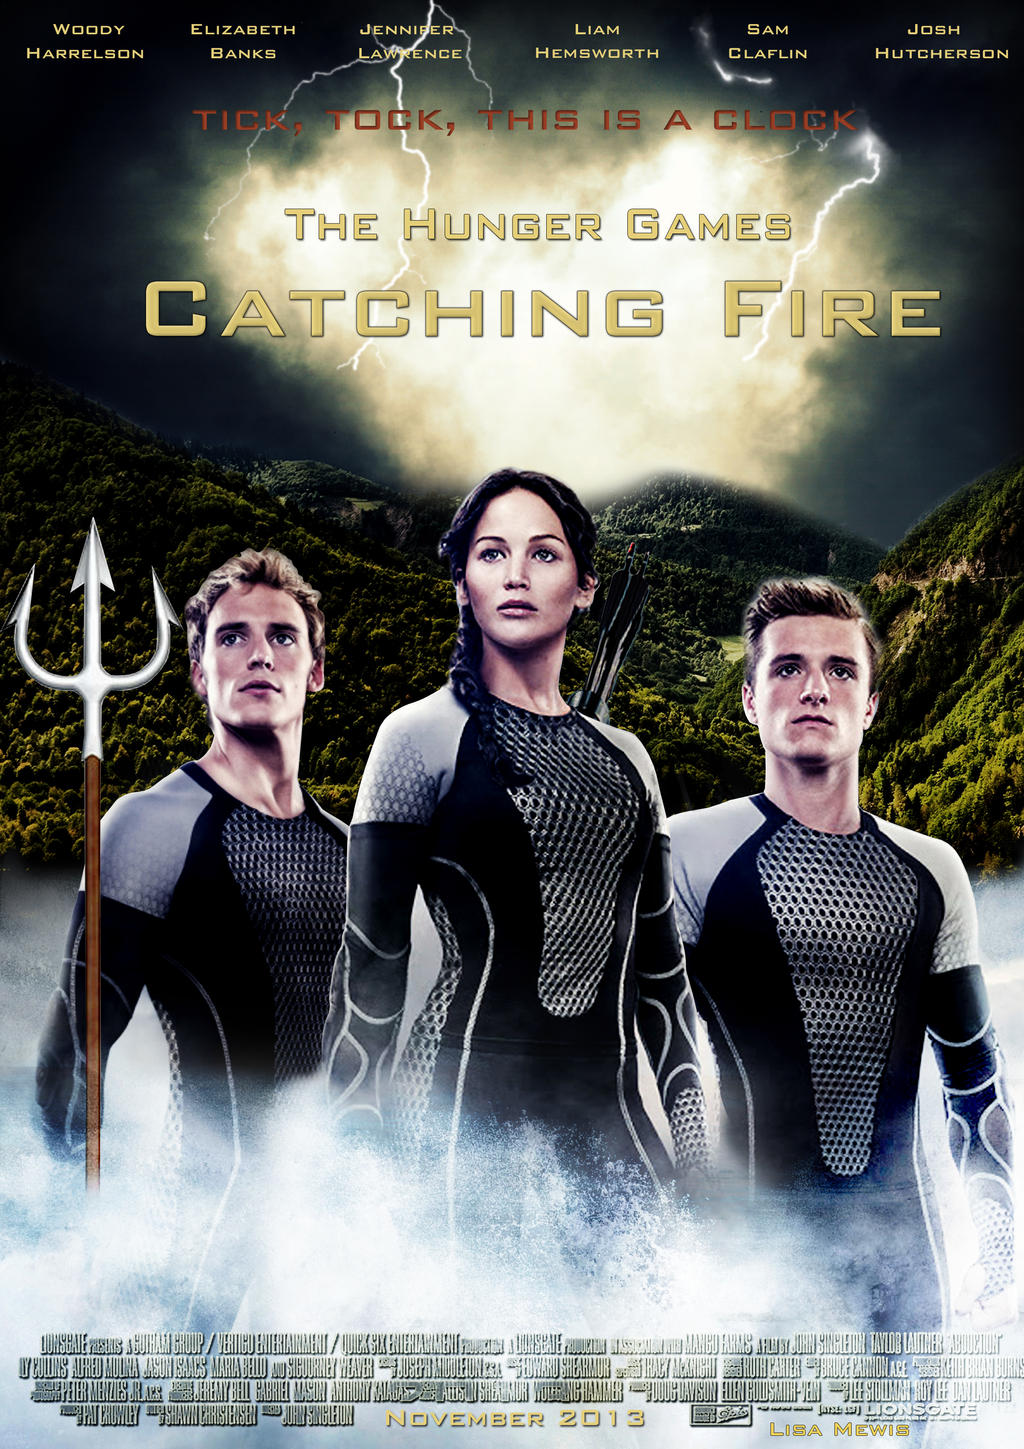 Catching Fire Movie poster (Self-made) by FoxColorsWorld ...